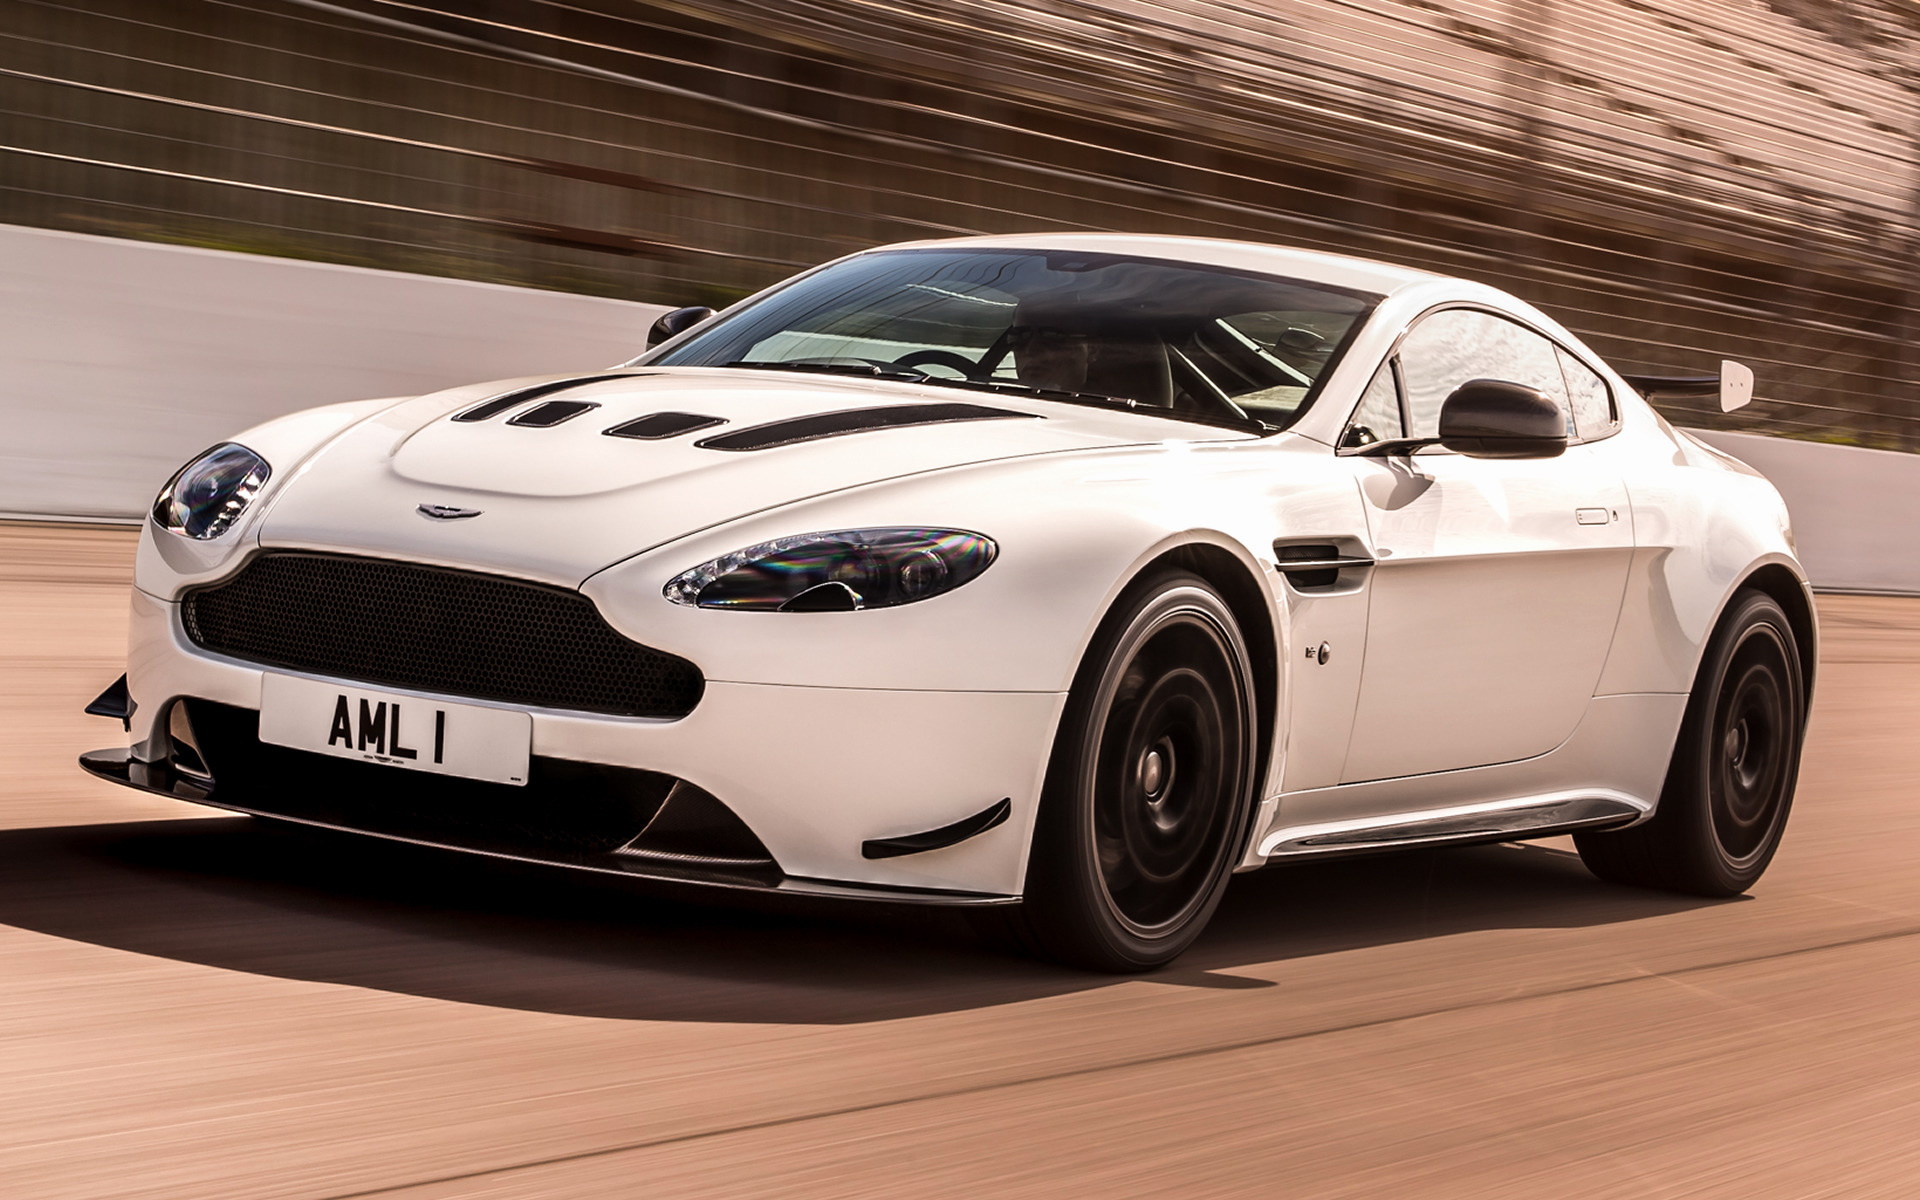 2017 Dodge Ram >> 2017 Aston Martin V12 Vantage S AMR Aero Kit (UK) - Wallpapers and HD Images | Car Pixel